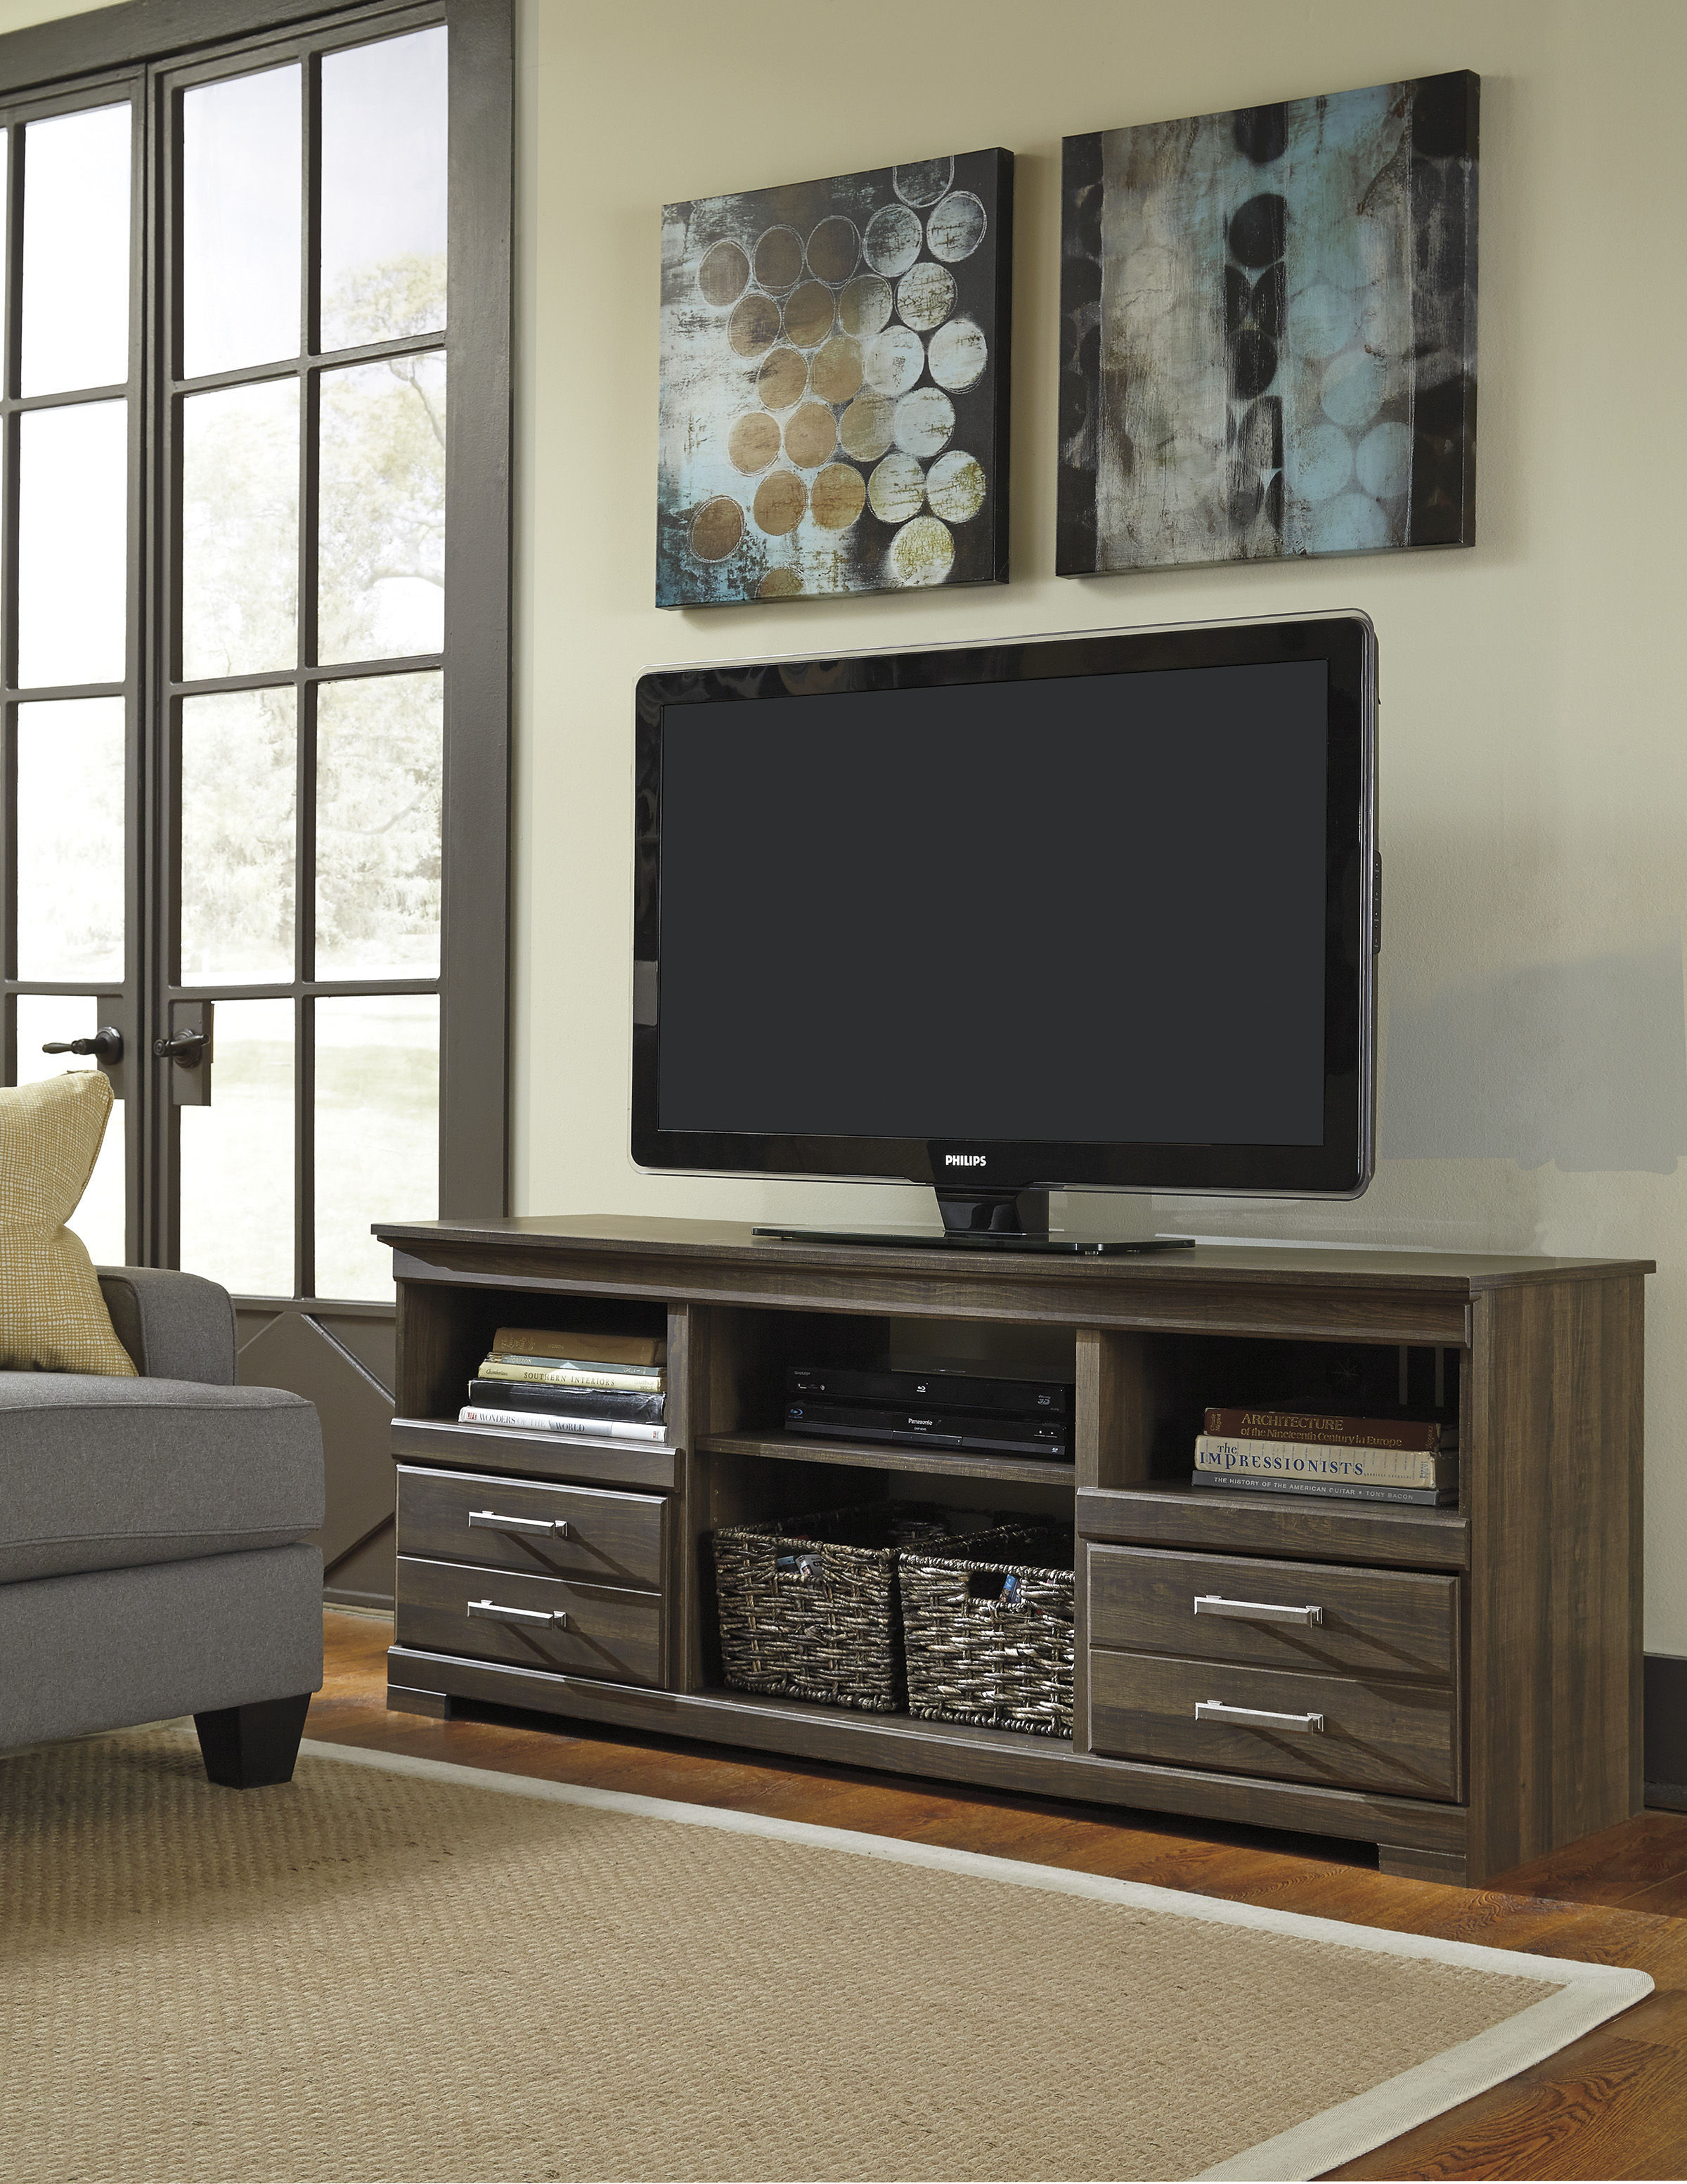 Ashley Furniture Frantin Brown Lg Tv Stand With Fireplace Option